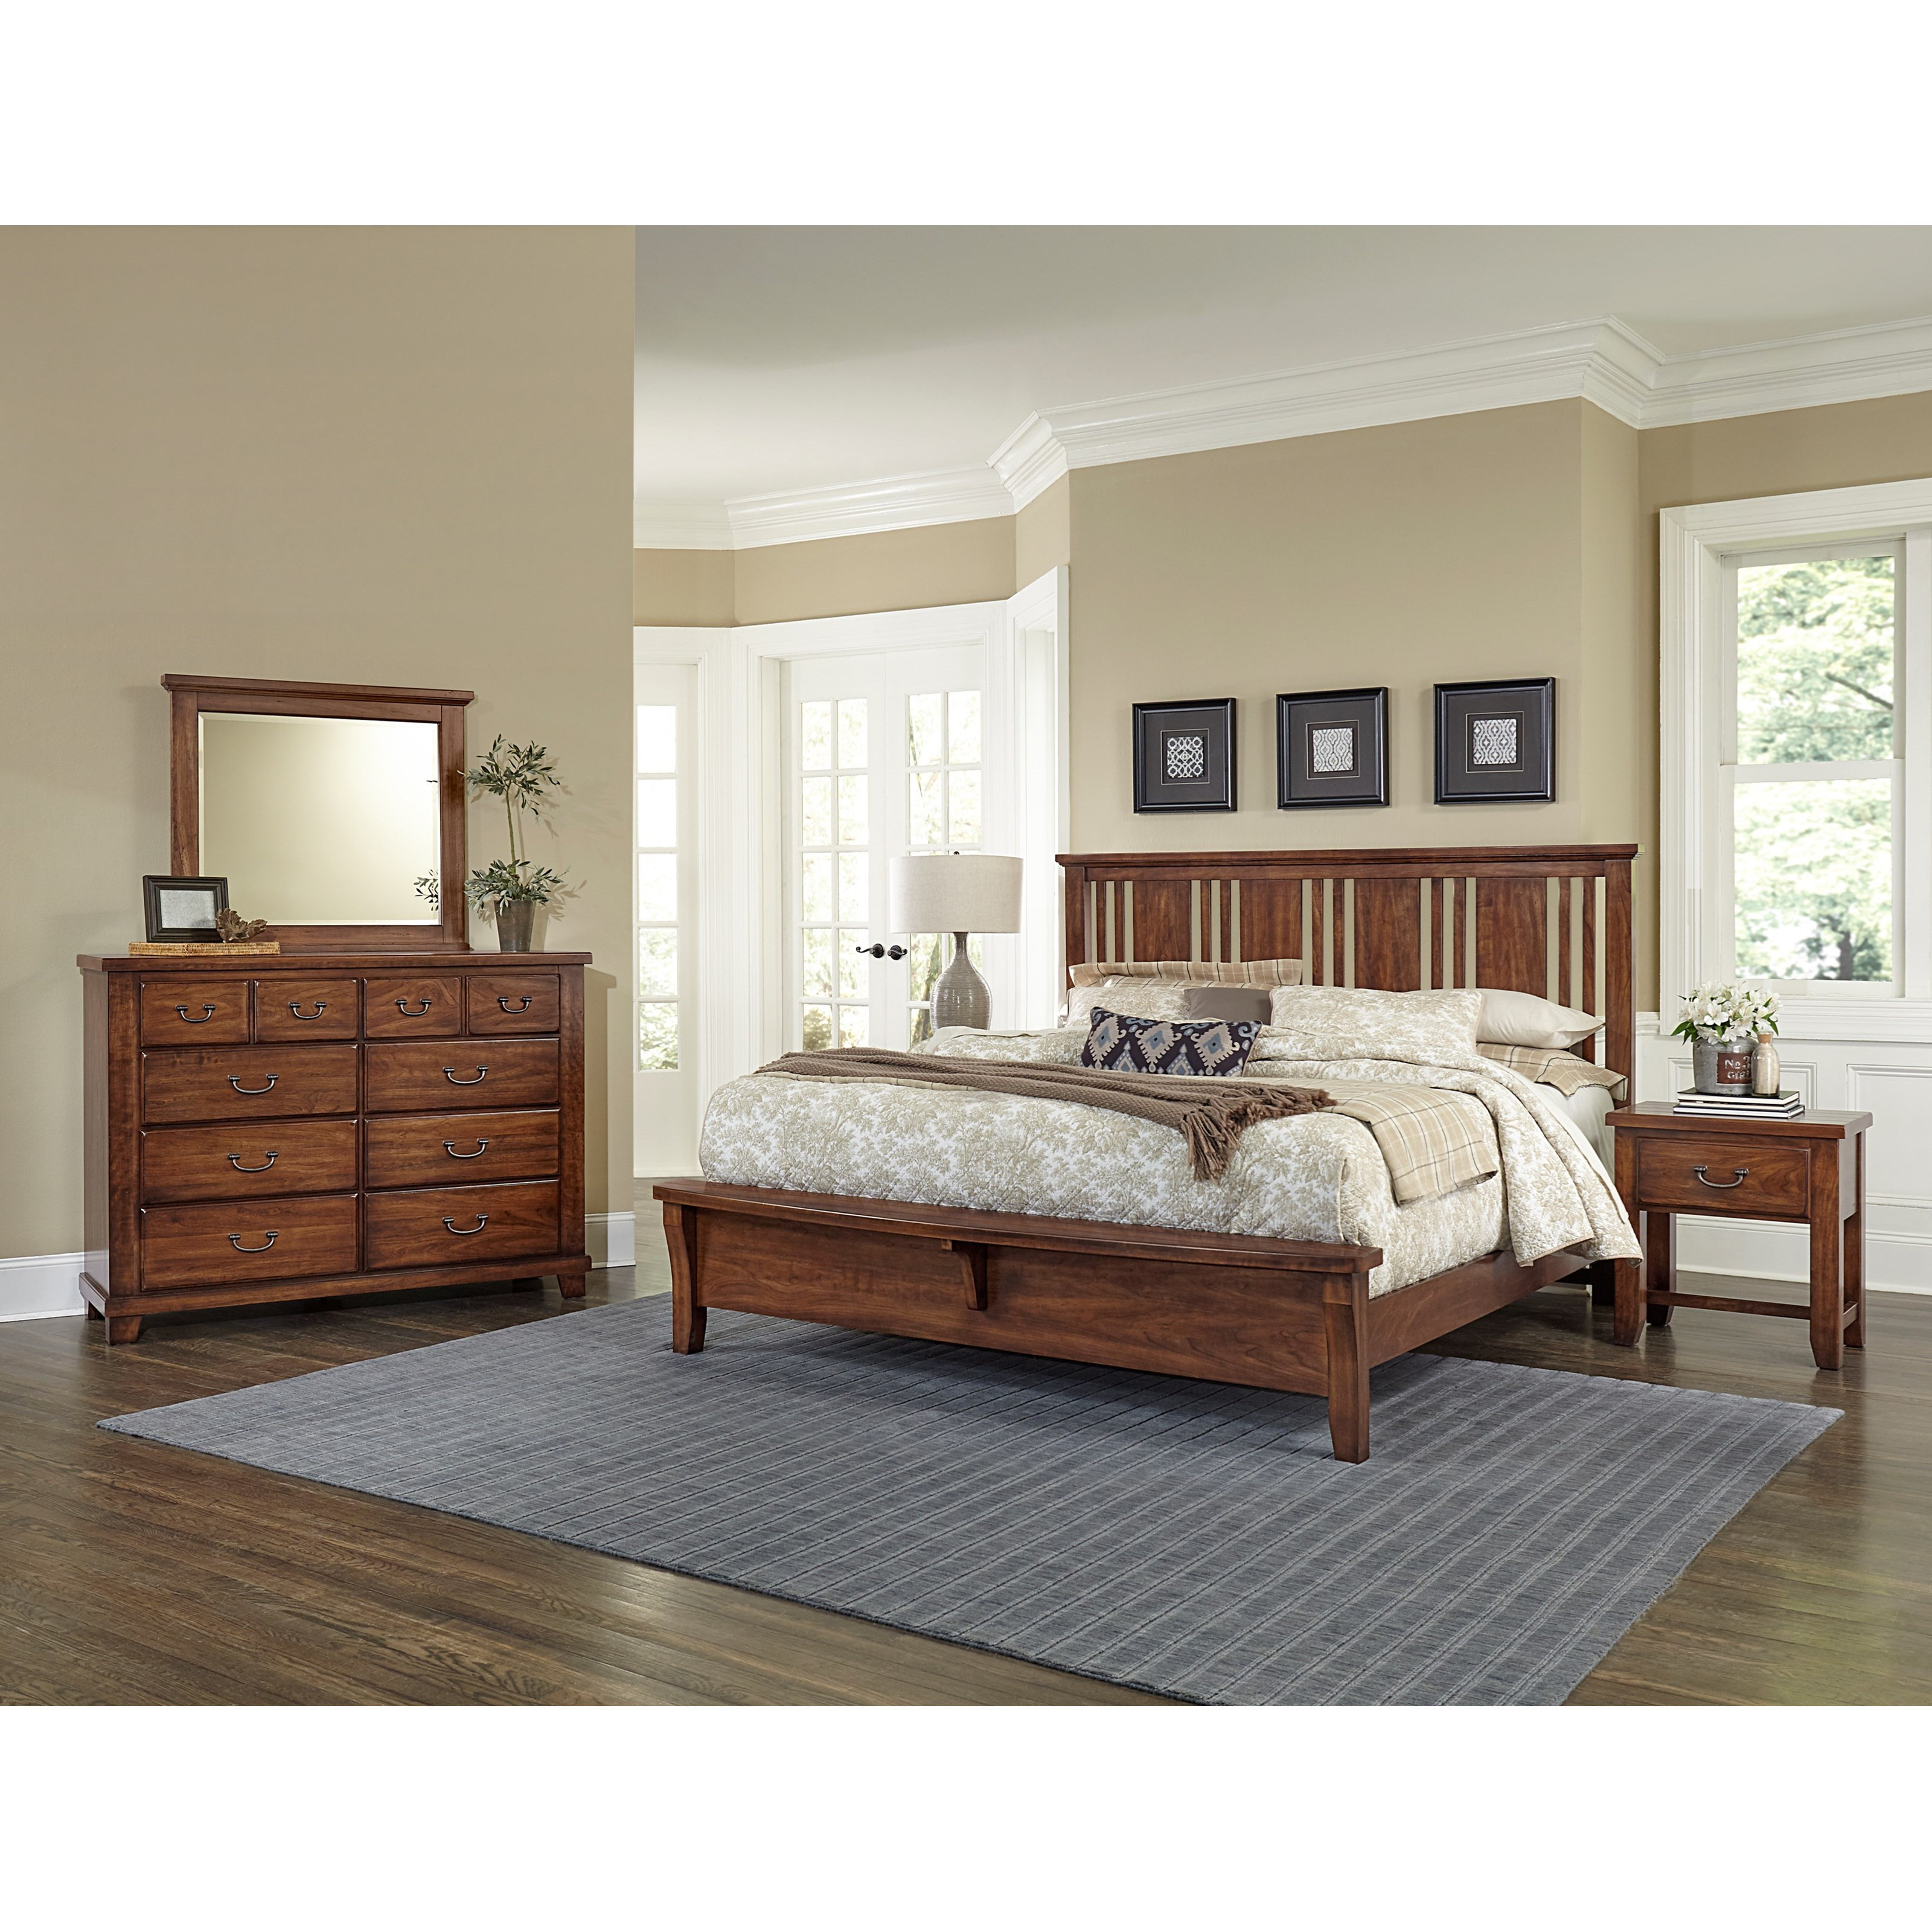 Vaughan bassett american cherry solid wood cherry king for Craftsman bed